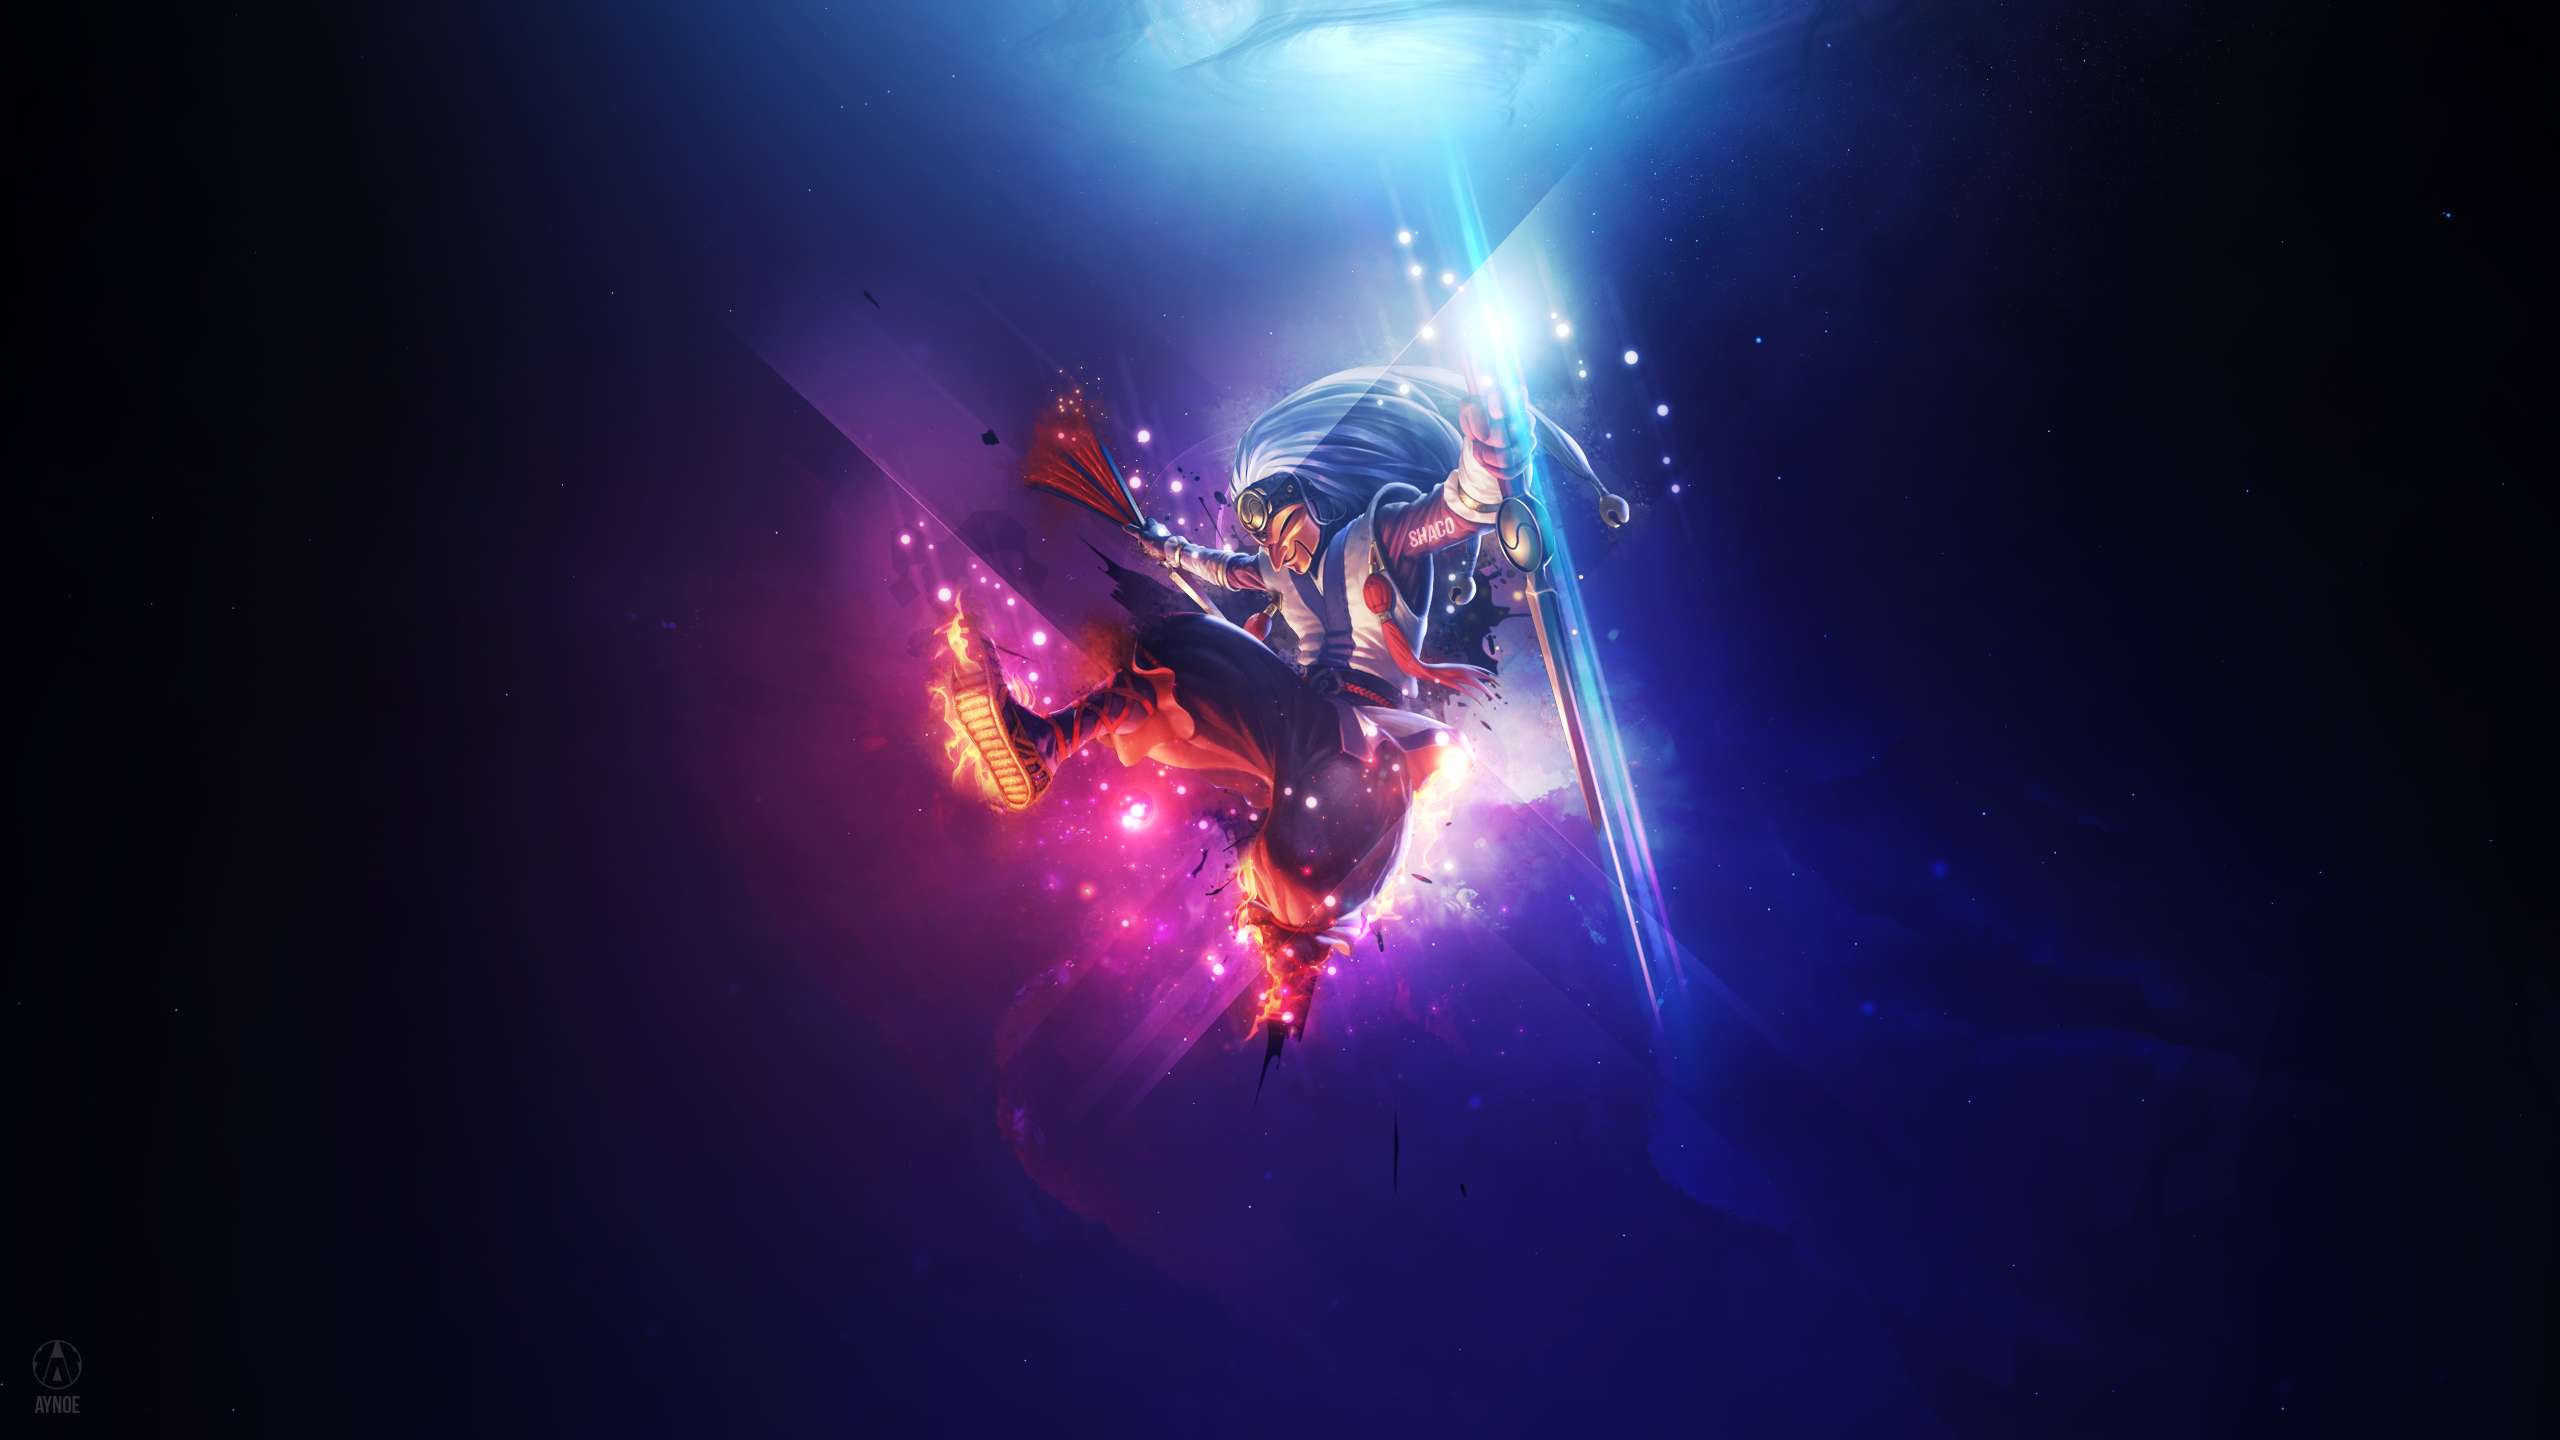 Masked Shaco League Of Legends Wallpaper By Aynoe On